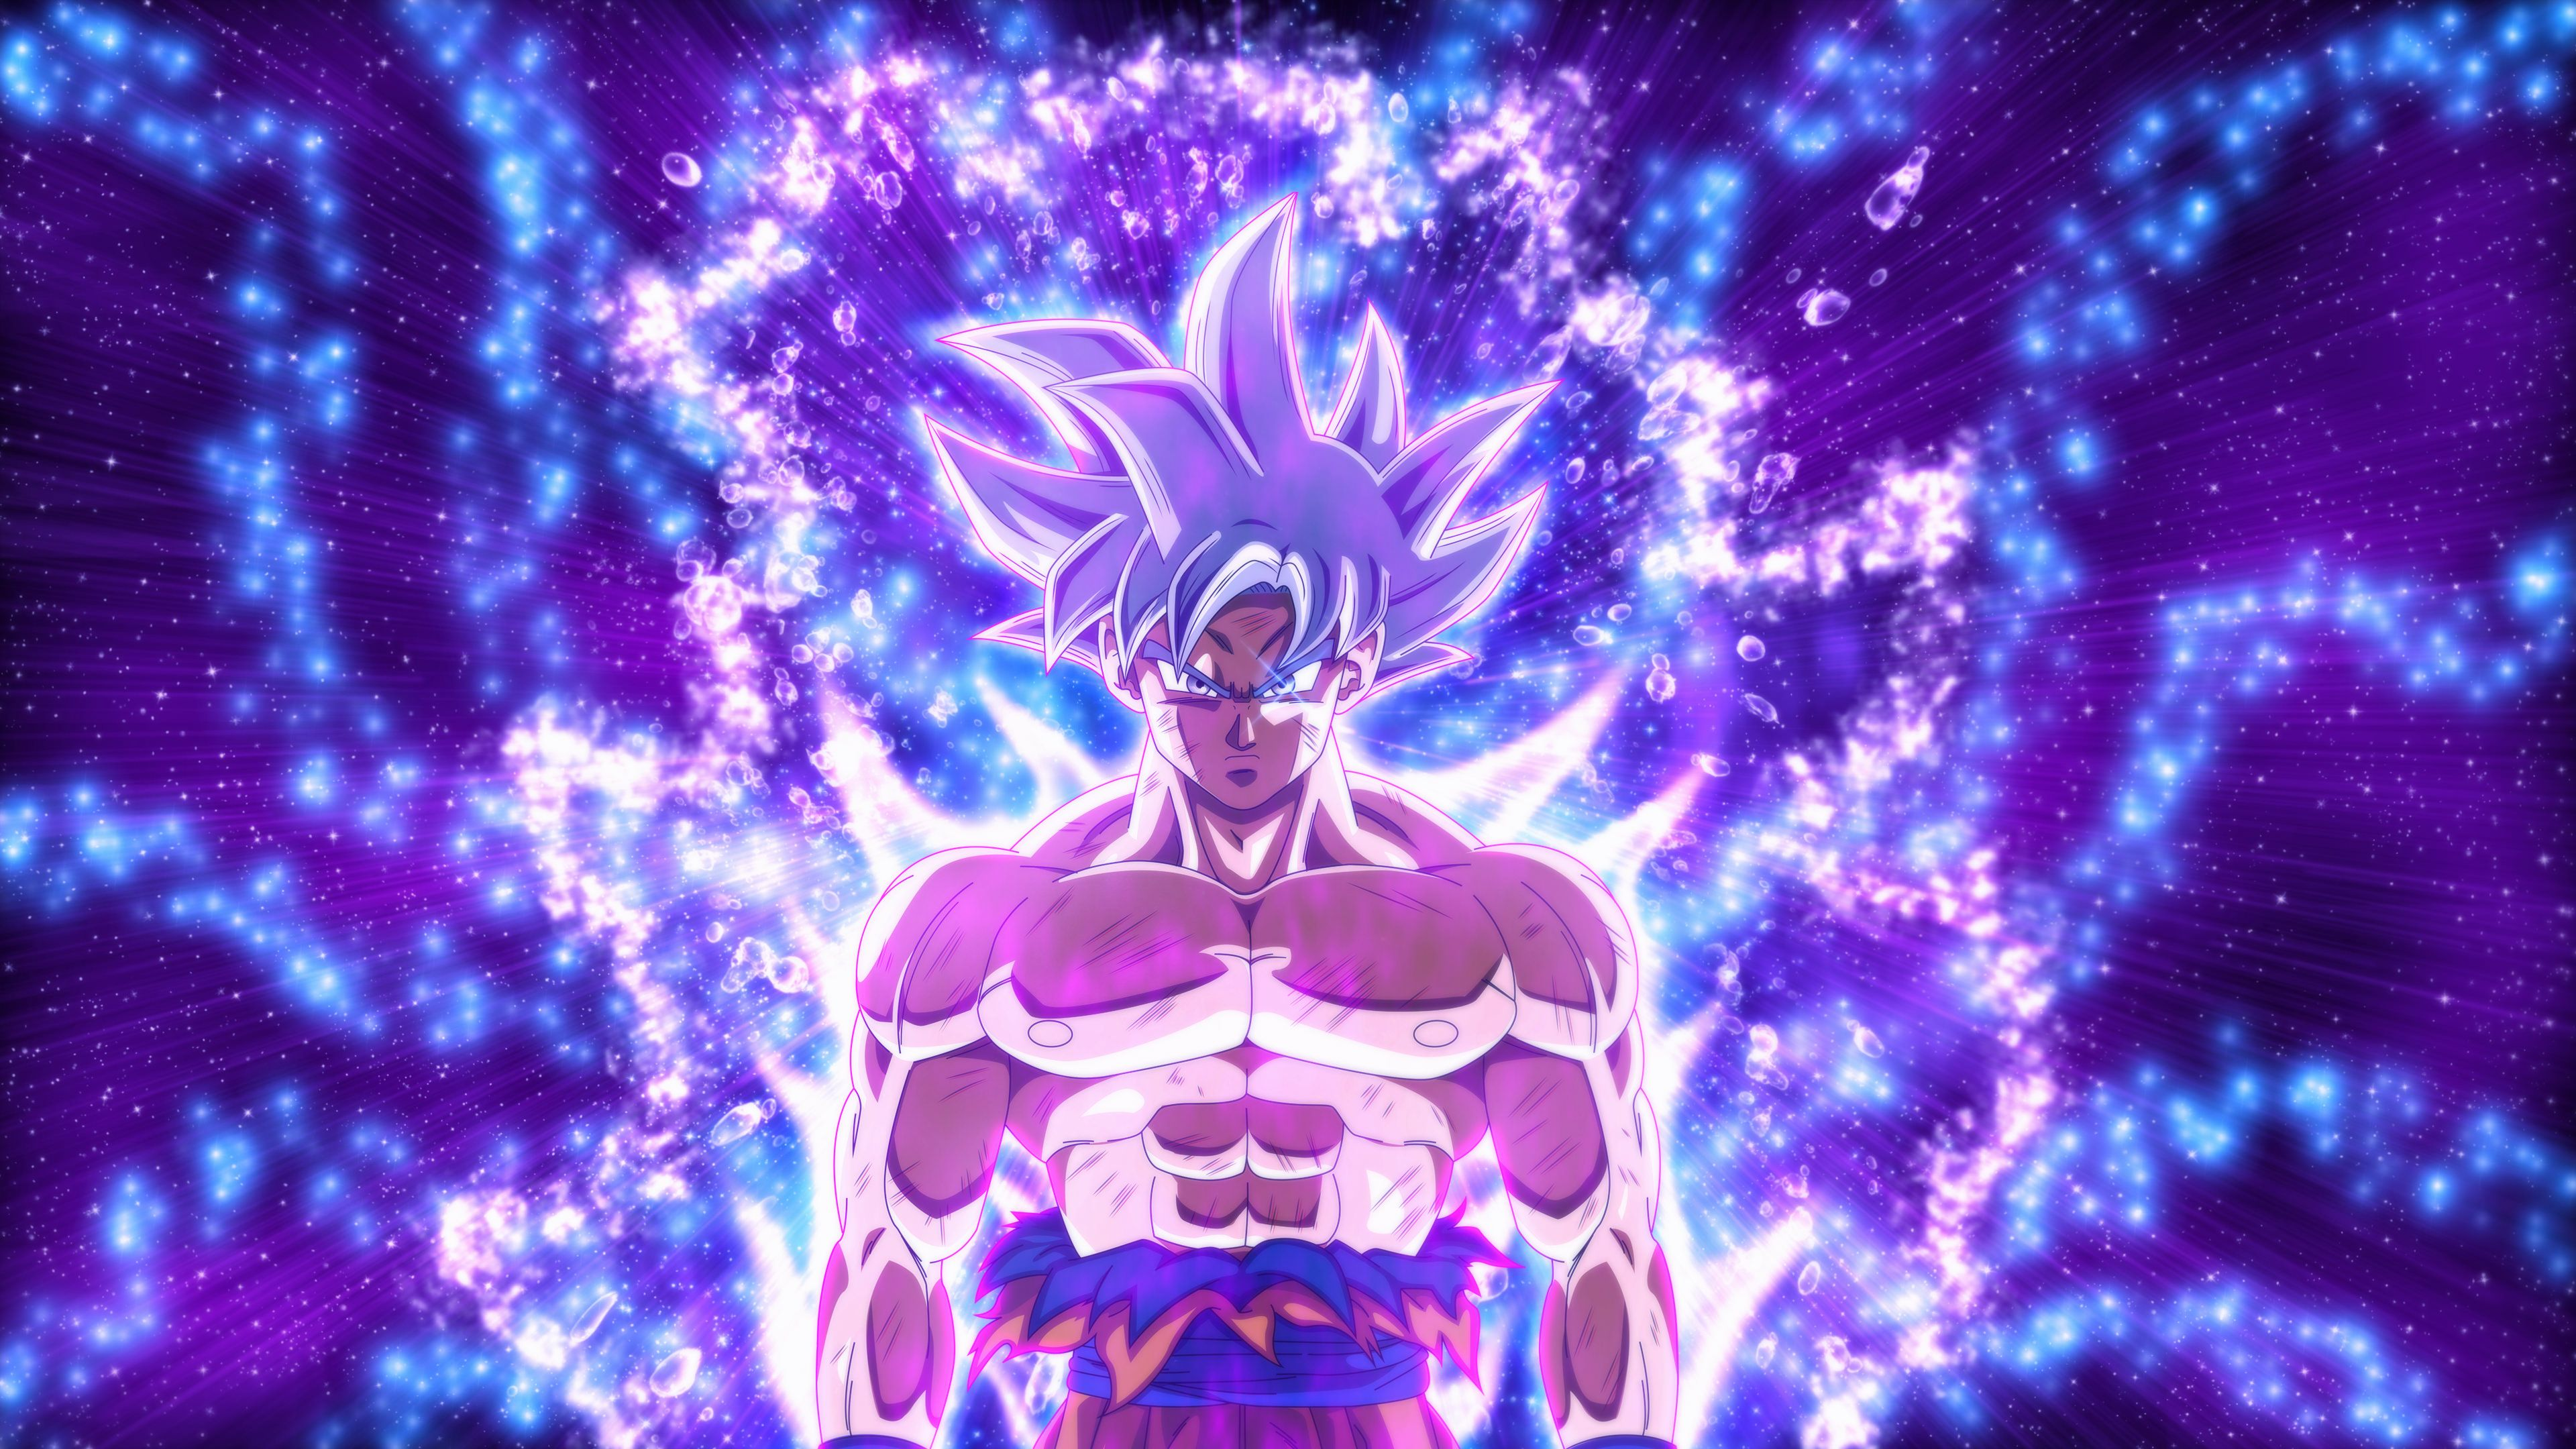 Mastered Ultra Instinct Goku 4k Uhd Goku Wallpaper Anime Dragon Ball Super Dragon Ball Super Goku